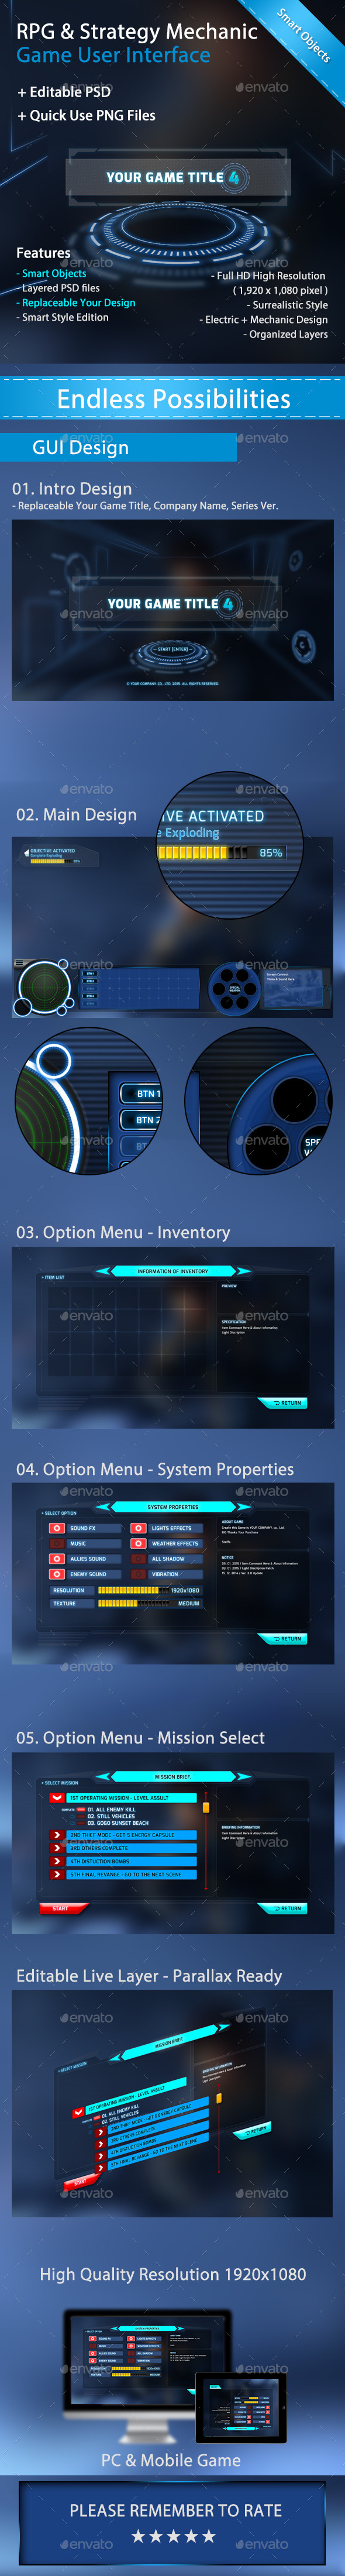 GraphicRiver RPG & Strategy Mechanic Game User Interface 11456331